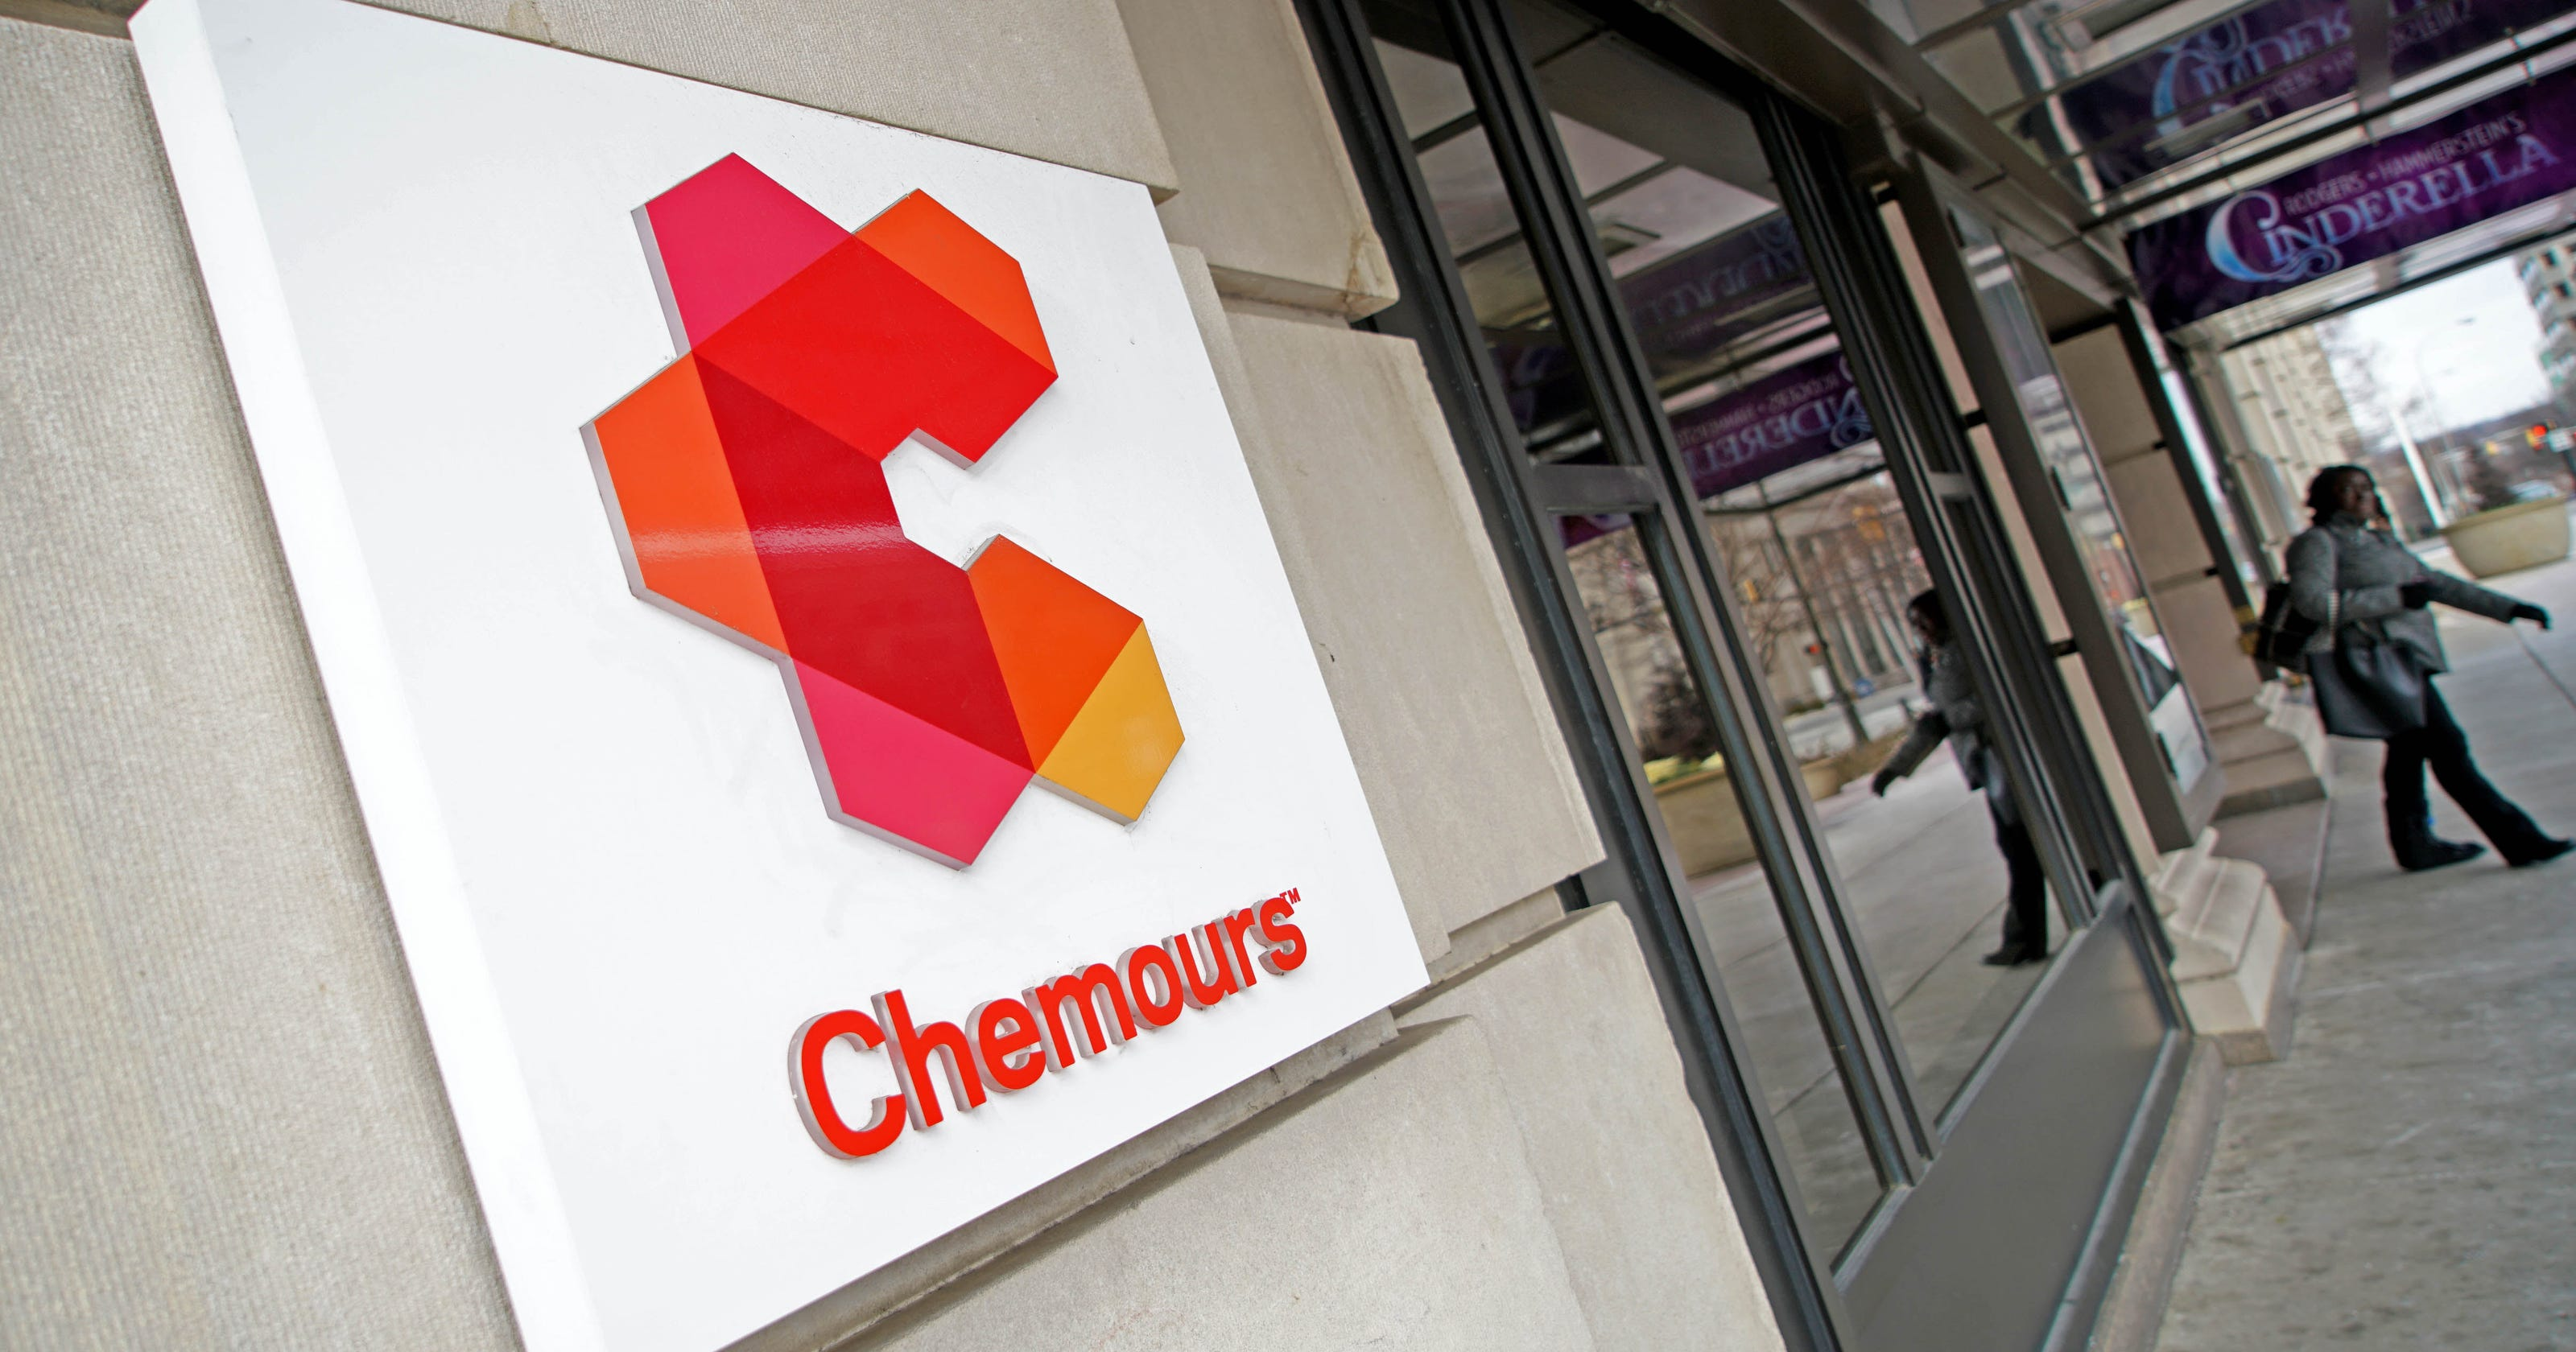 JPMorgan predicts Chemours' stock will keep rising